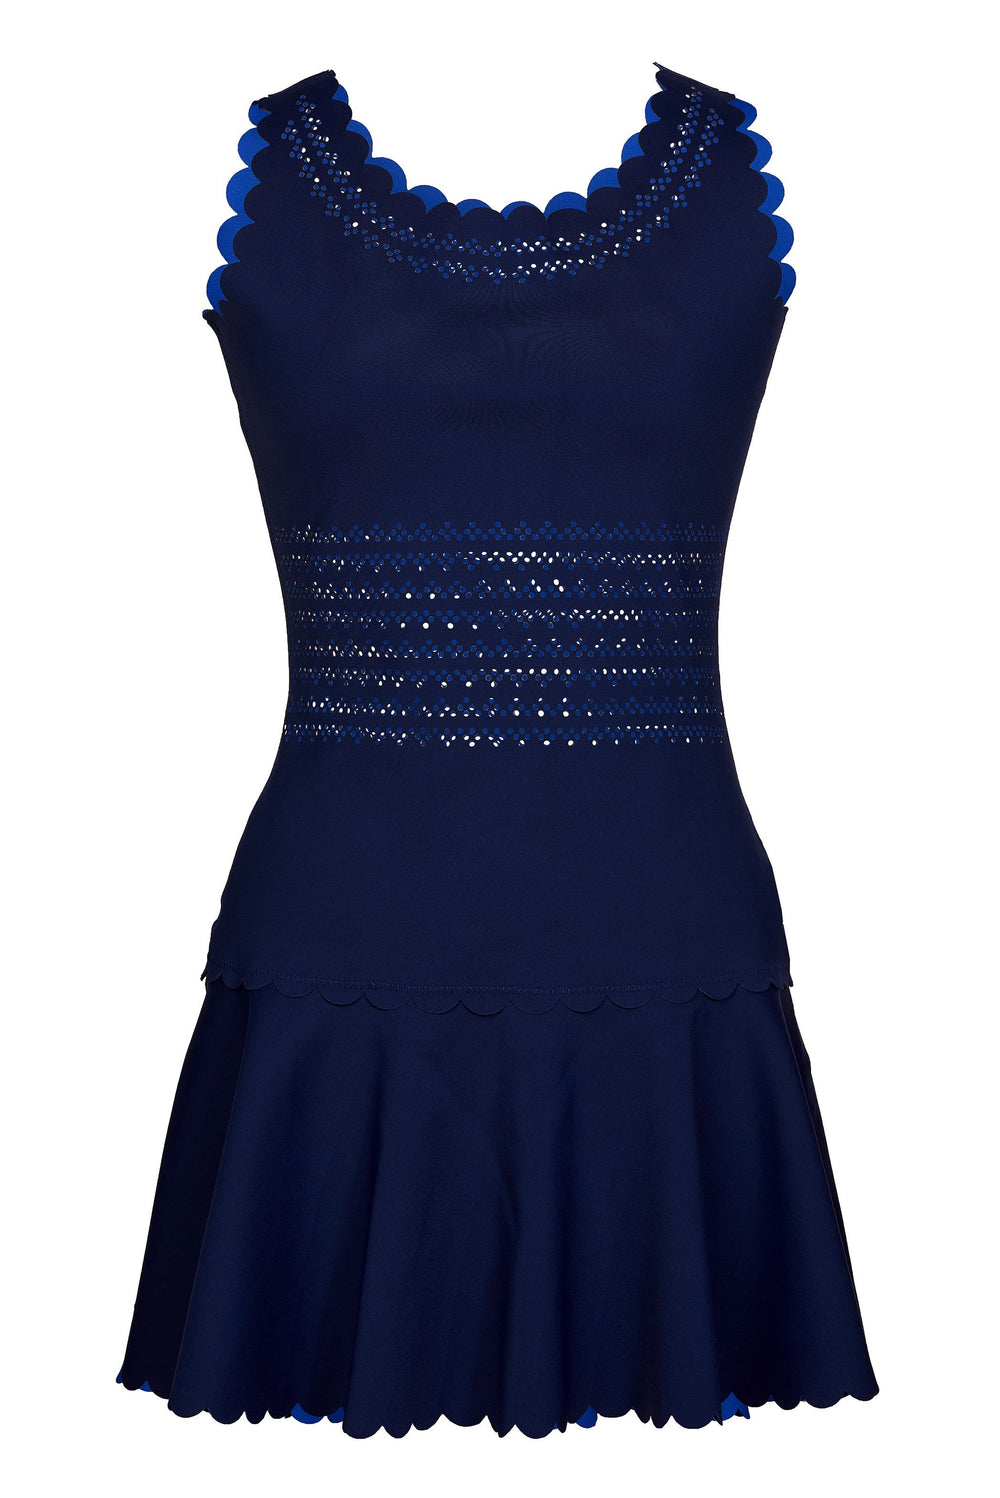 Navy Blue Reverse Side Royal Blue